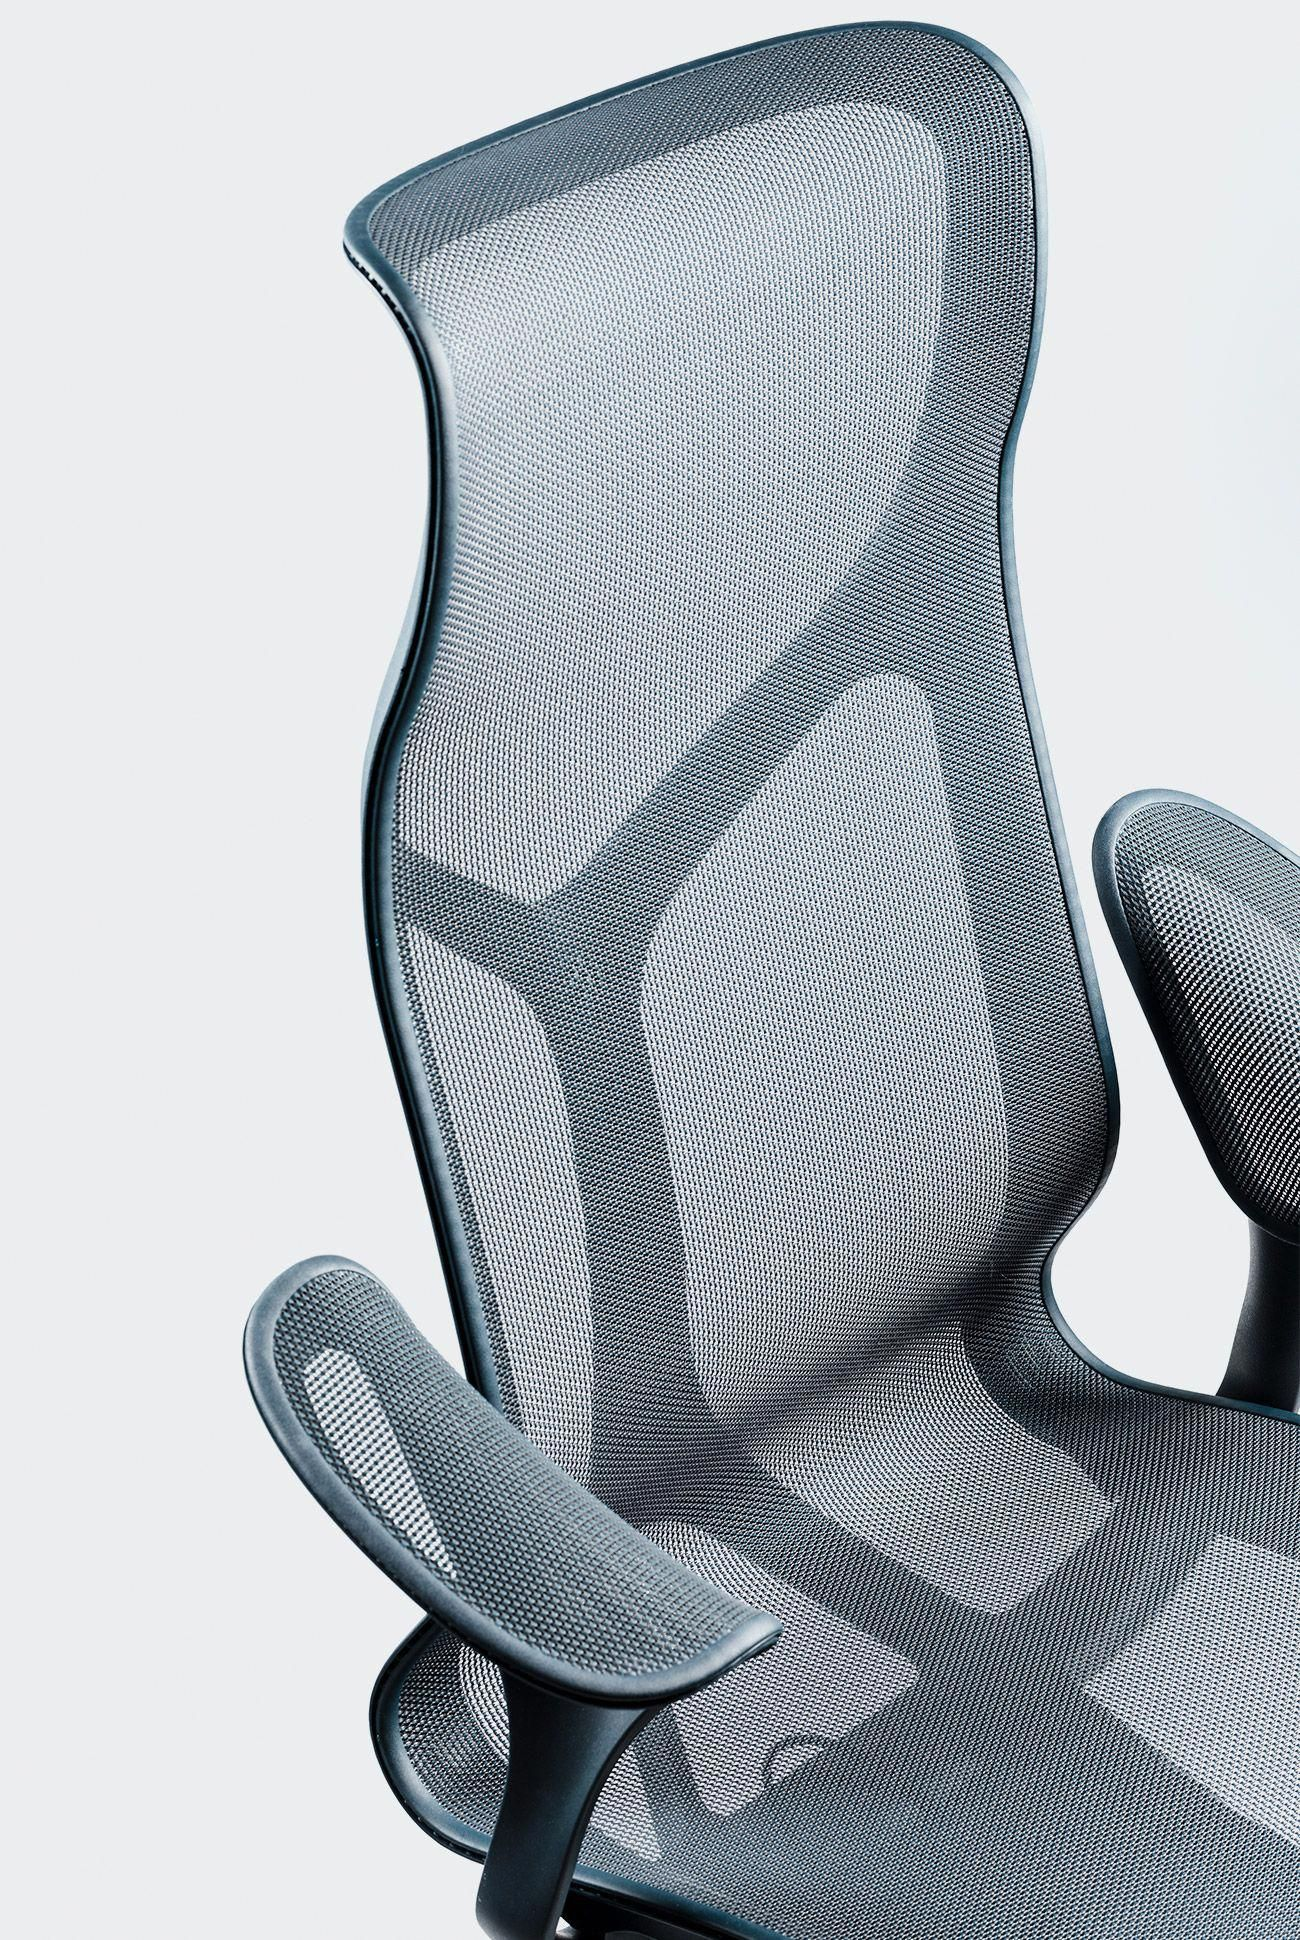 Most Comfortable Office Chair Blackdiningroomchairs Info 6184935362 Best Office Chair Office Chair Ergonomic Office Chair